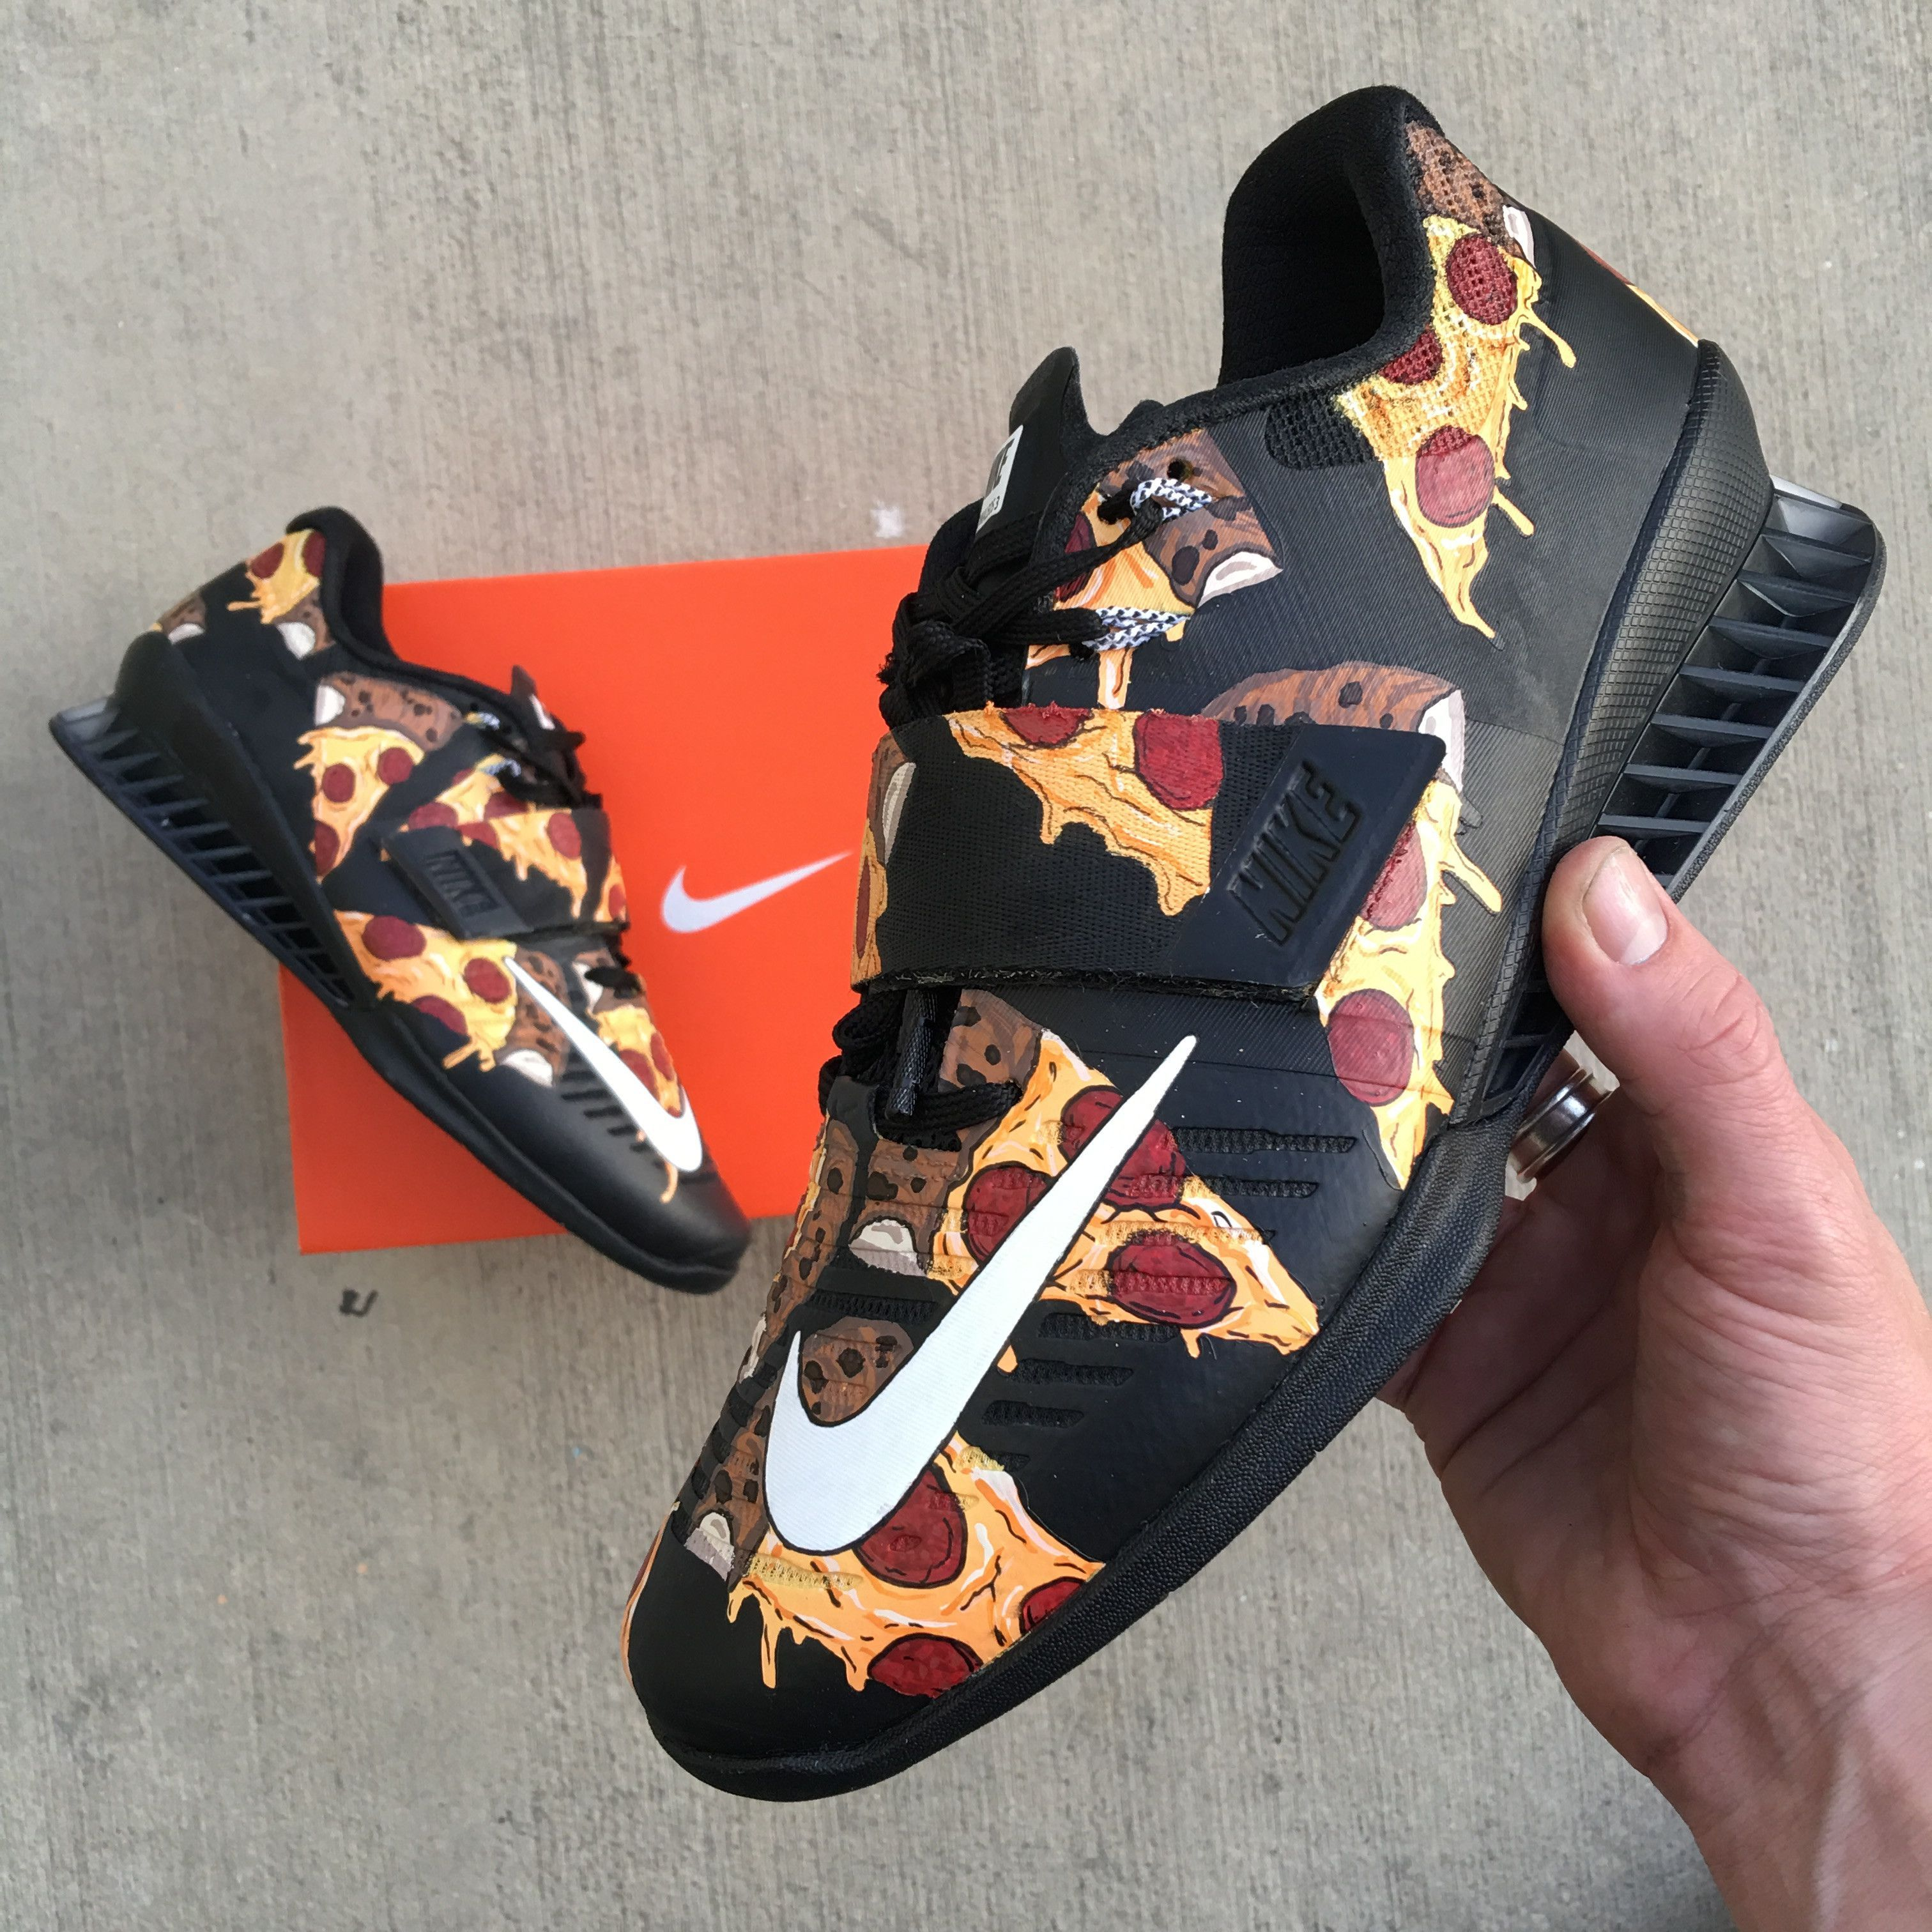 san francisco 42b4e a9e4b These Custom Nike Romaleos 3 Have been painted to have a pizza pattern all  over the shoes. Paint is 100% permanent and will not come off. Made in the  USA.